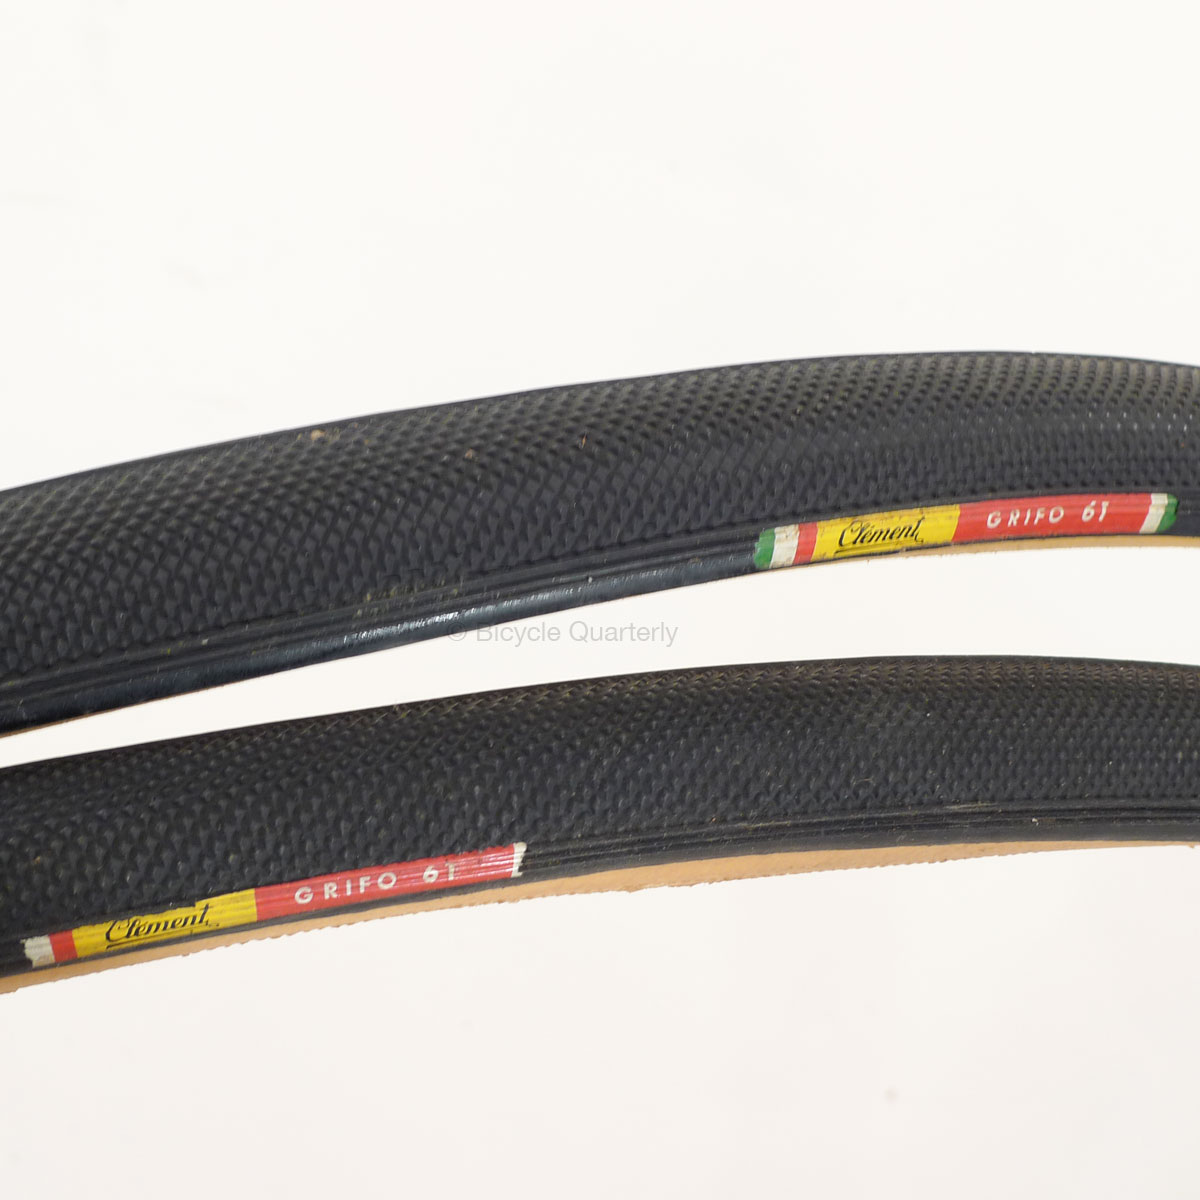 Classic Clement Grifo cross tire